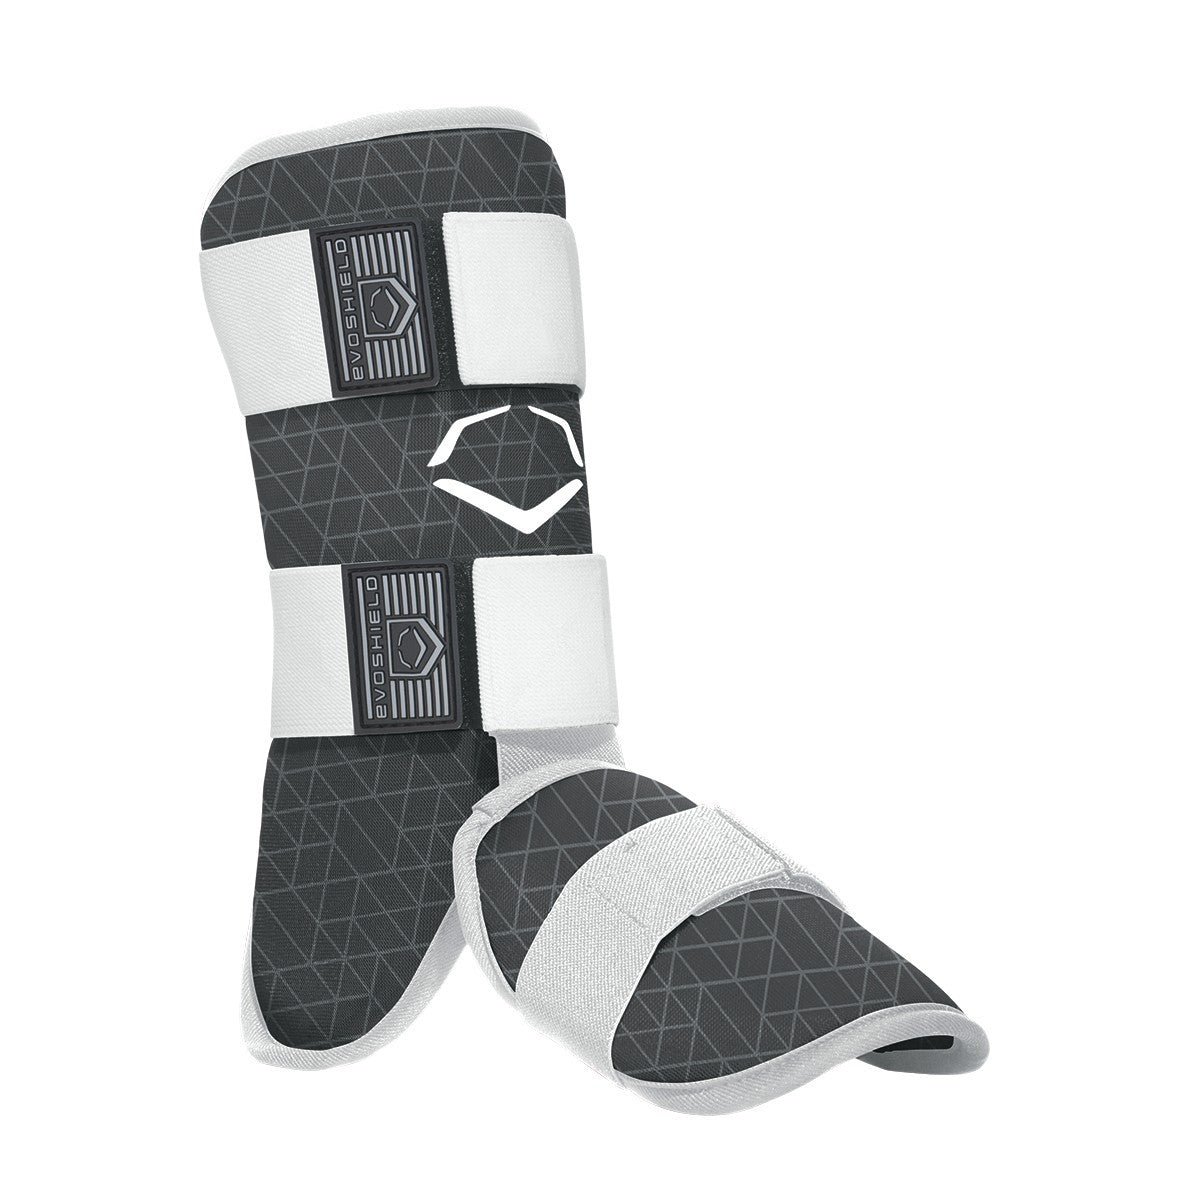 EVOCHARGE BATTER'S LEG GUARD (Available in 4 Colors)